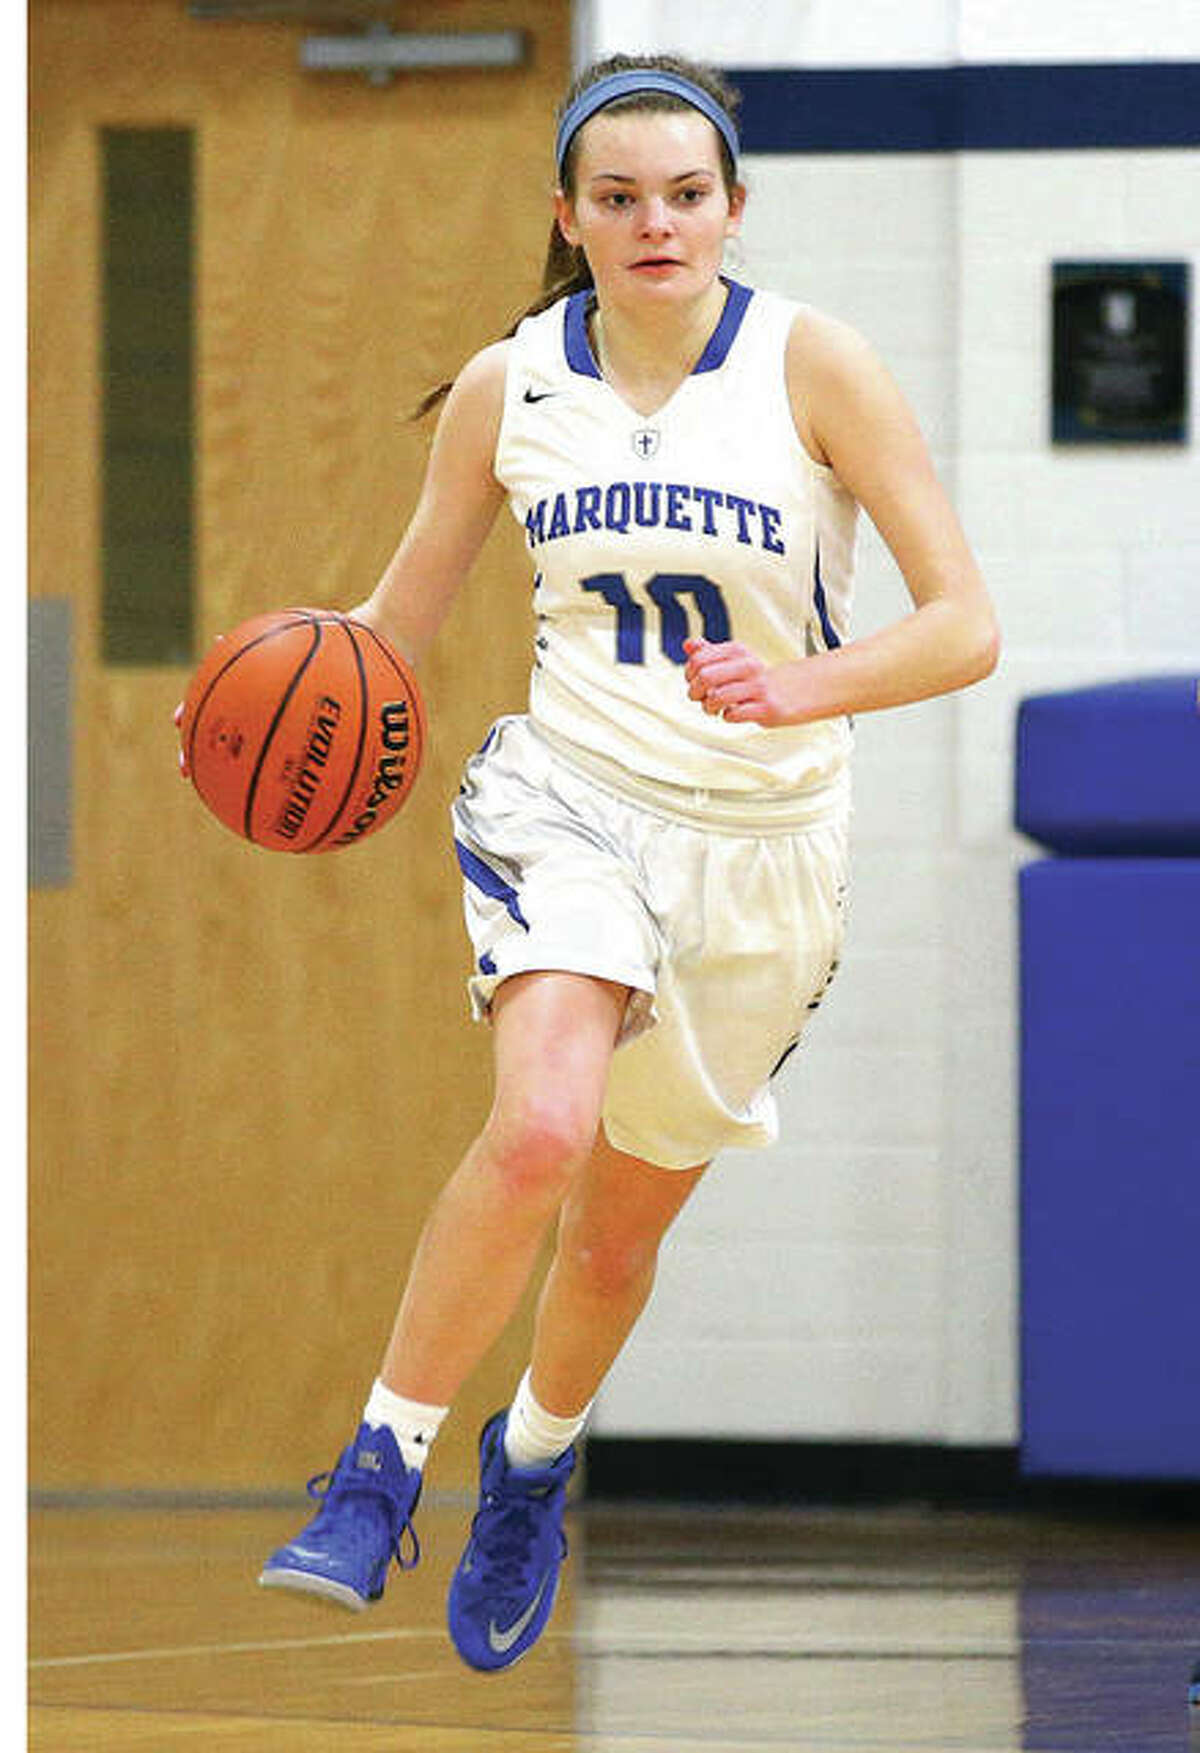 Marquette's Lila Snider scored 18 points Wednesday night in her team's victory over Metro East Lutheran in a consolation semifinal game at the Columbia Tip-Off Classic.